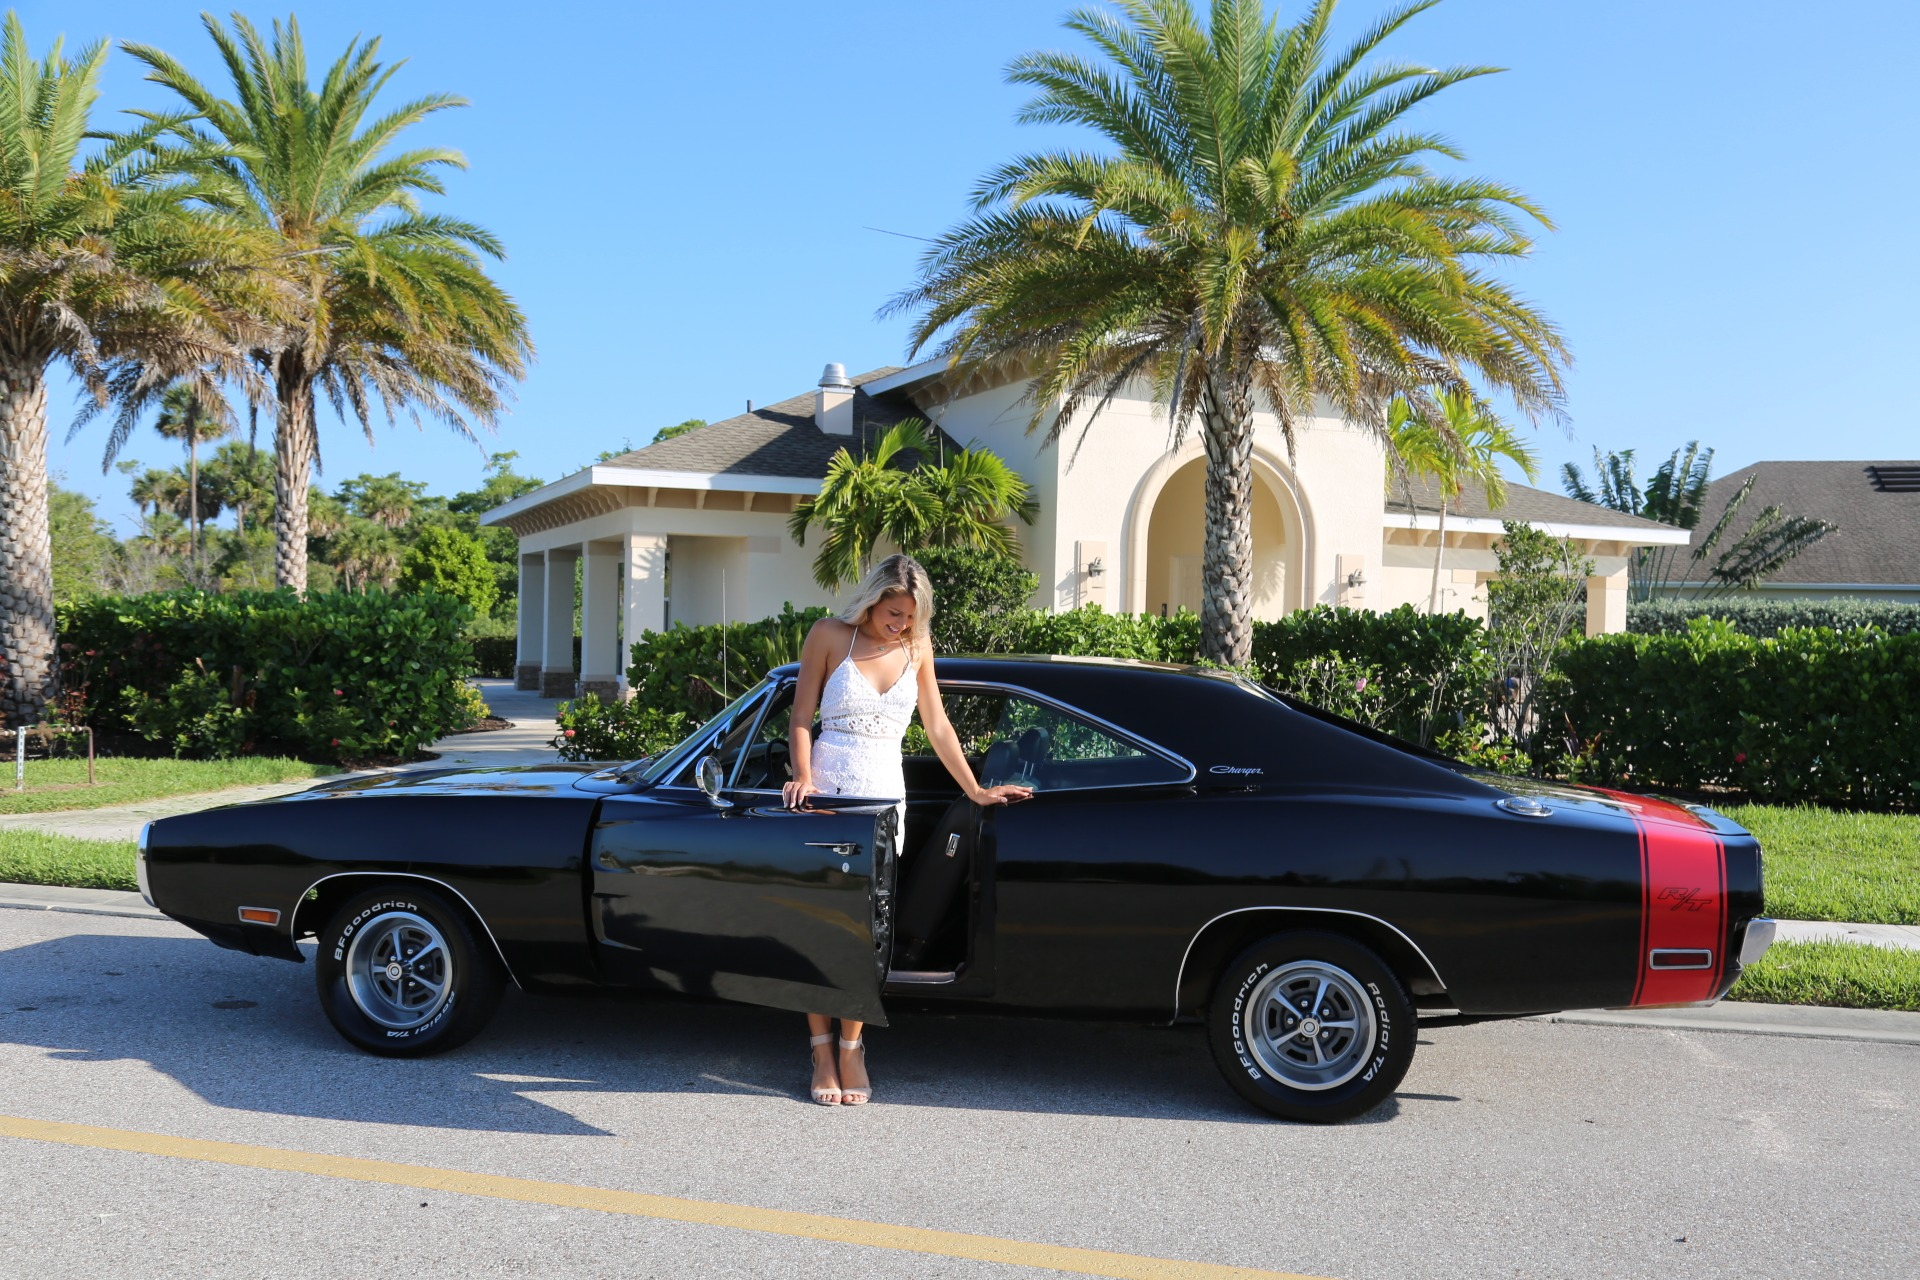 Used 1970 Dodge Charger Charger for sale $52,000 at Muscle Cars for Sale Inc. in Fort Myers FL 33912 8